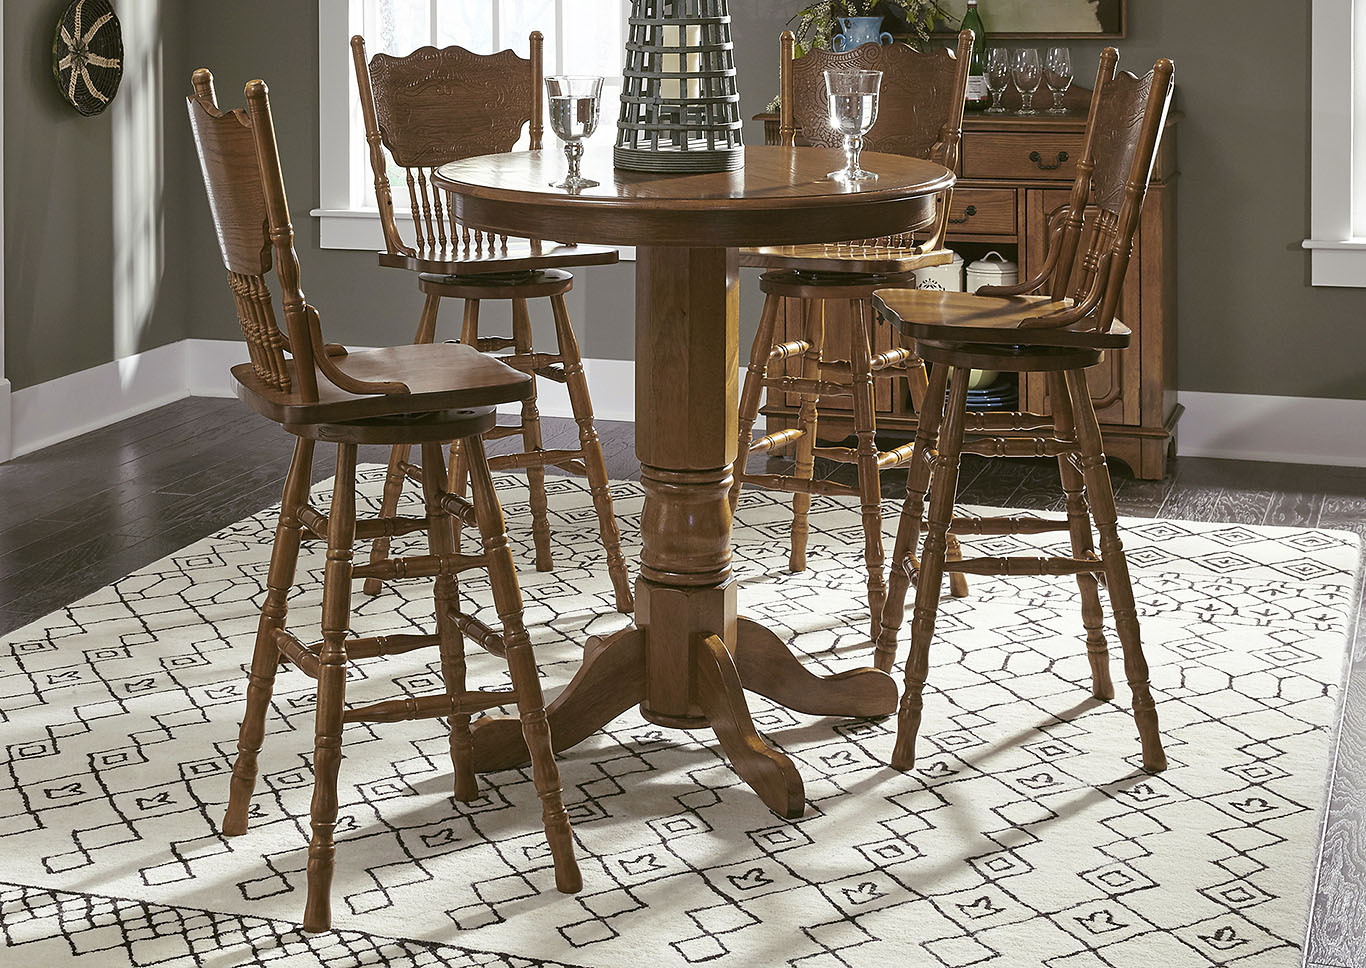 Nostalgia Round Pub Table w/4 Press Back Barstools,Liberty